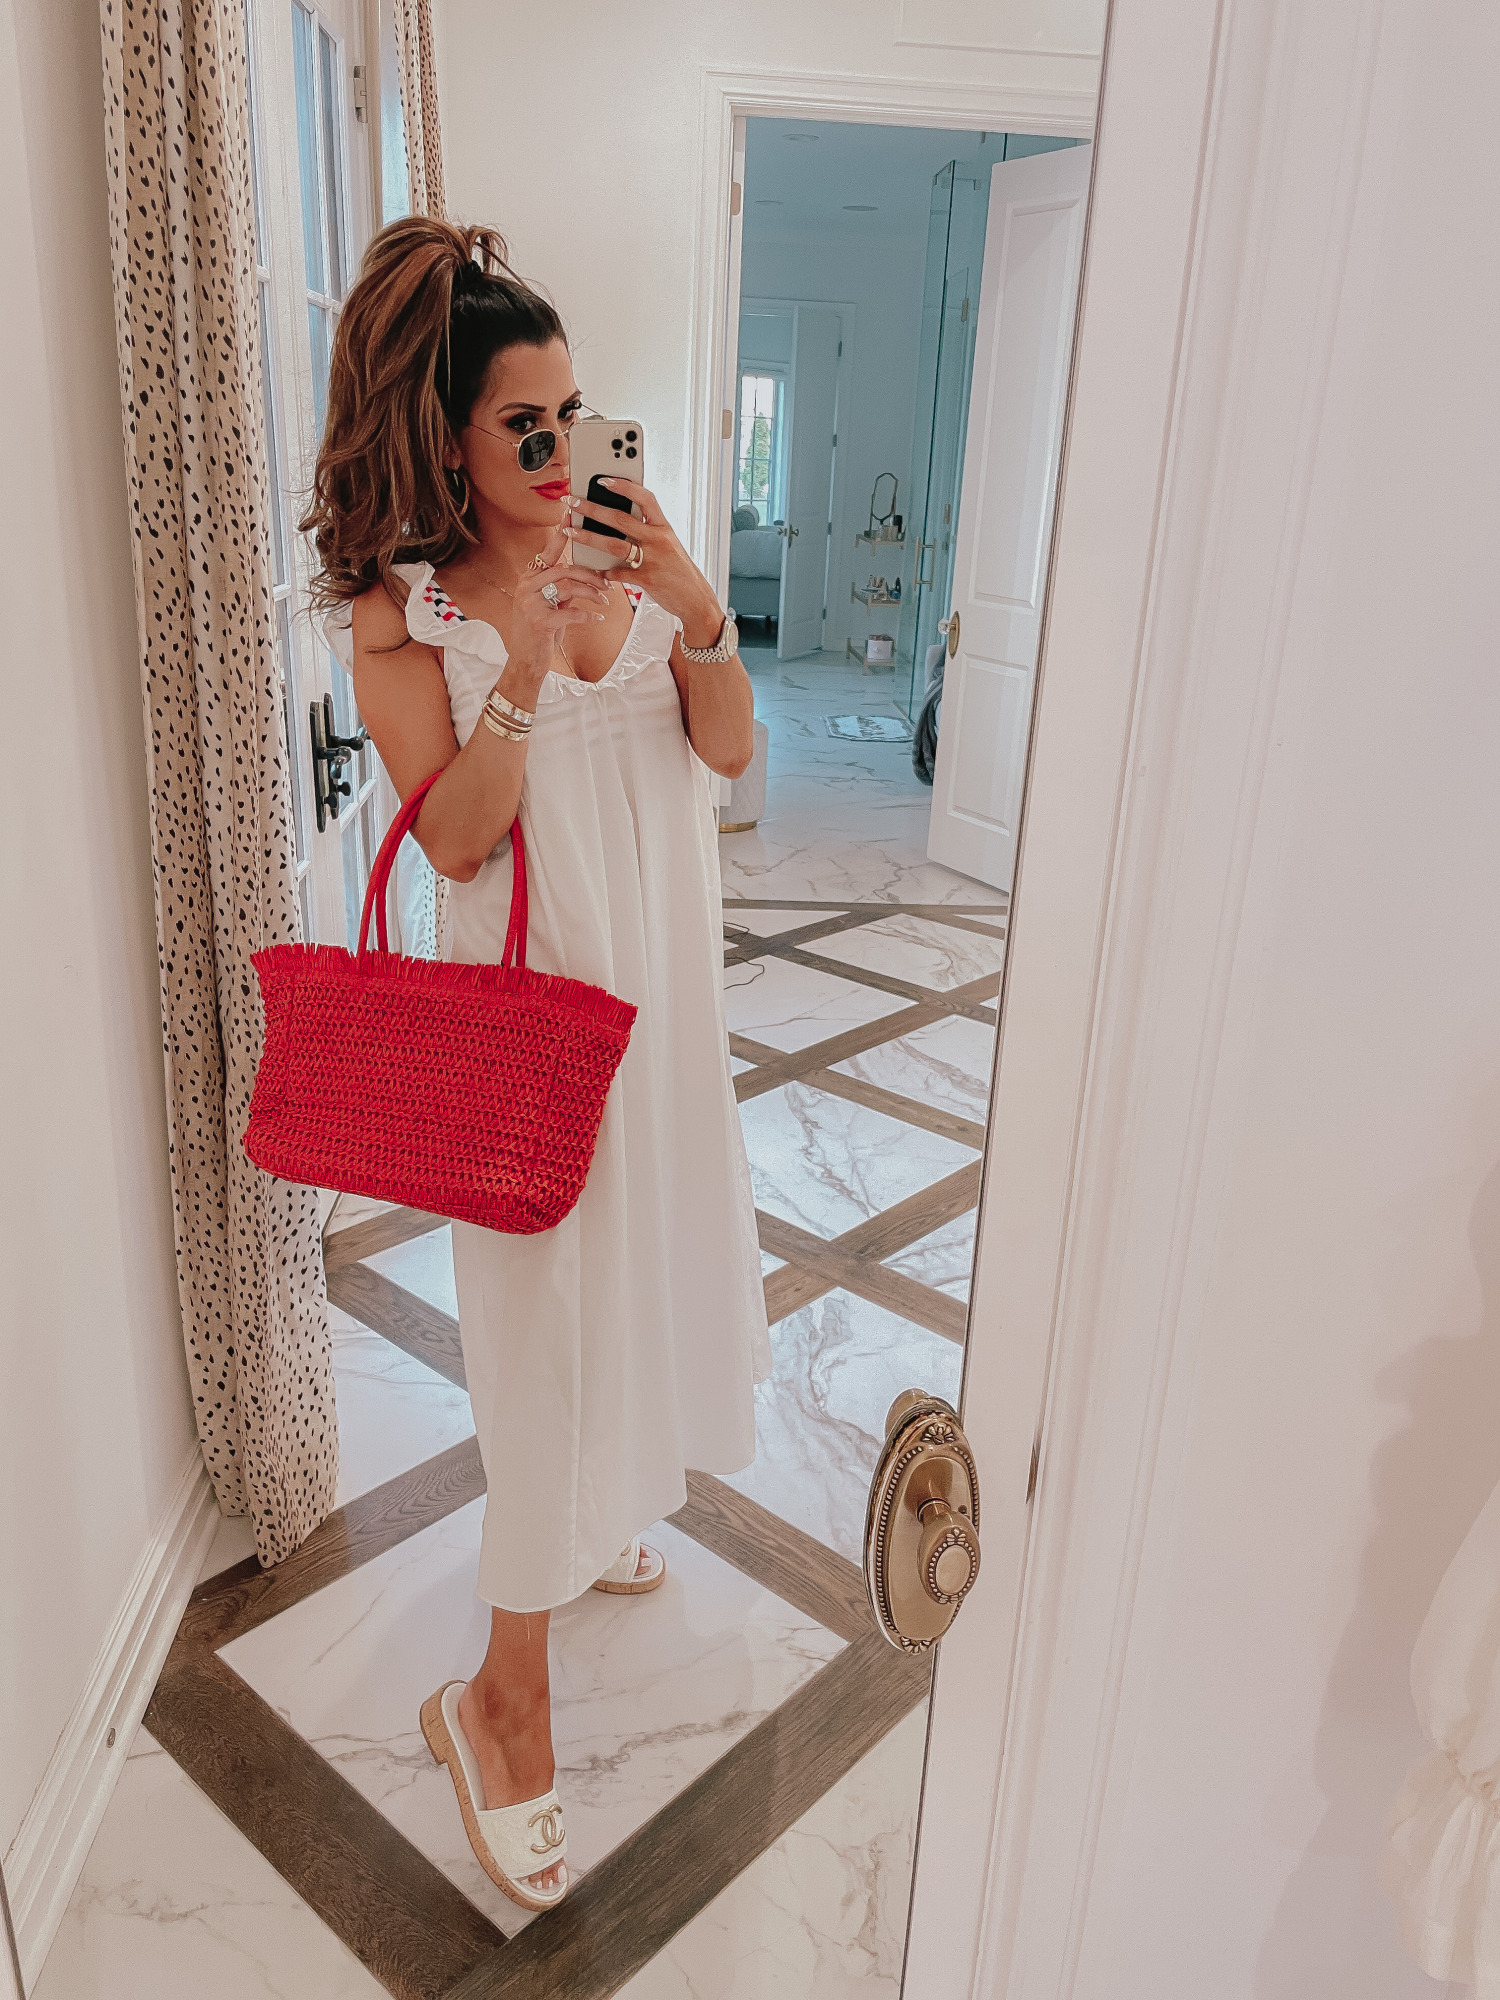 july 4 outfit inspiration 2021, pinterest july 4 outfit, gucci red lipstick goldie red, Emily gemma | June Instagram Recap by popular US fashion blog, The Sweetest Thing: image of Emily Gemma wearing a white maxi coverup, white sandals, and holding a red woven tote bag.